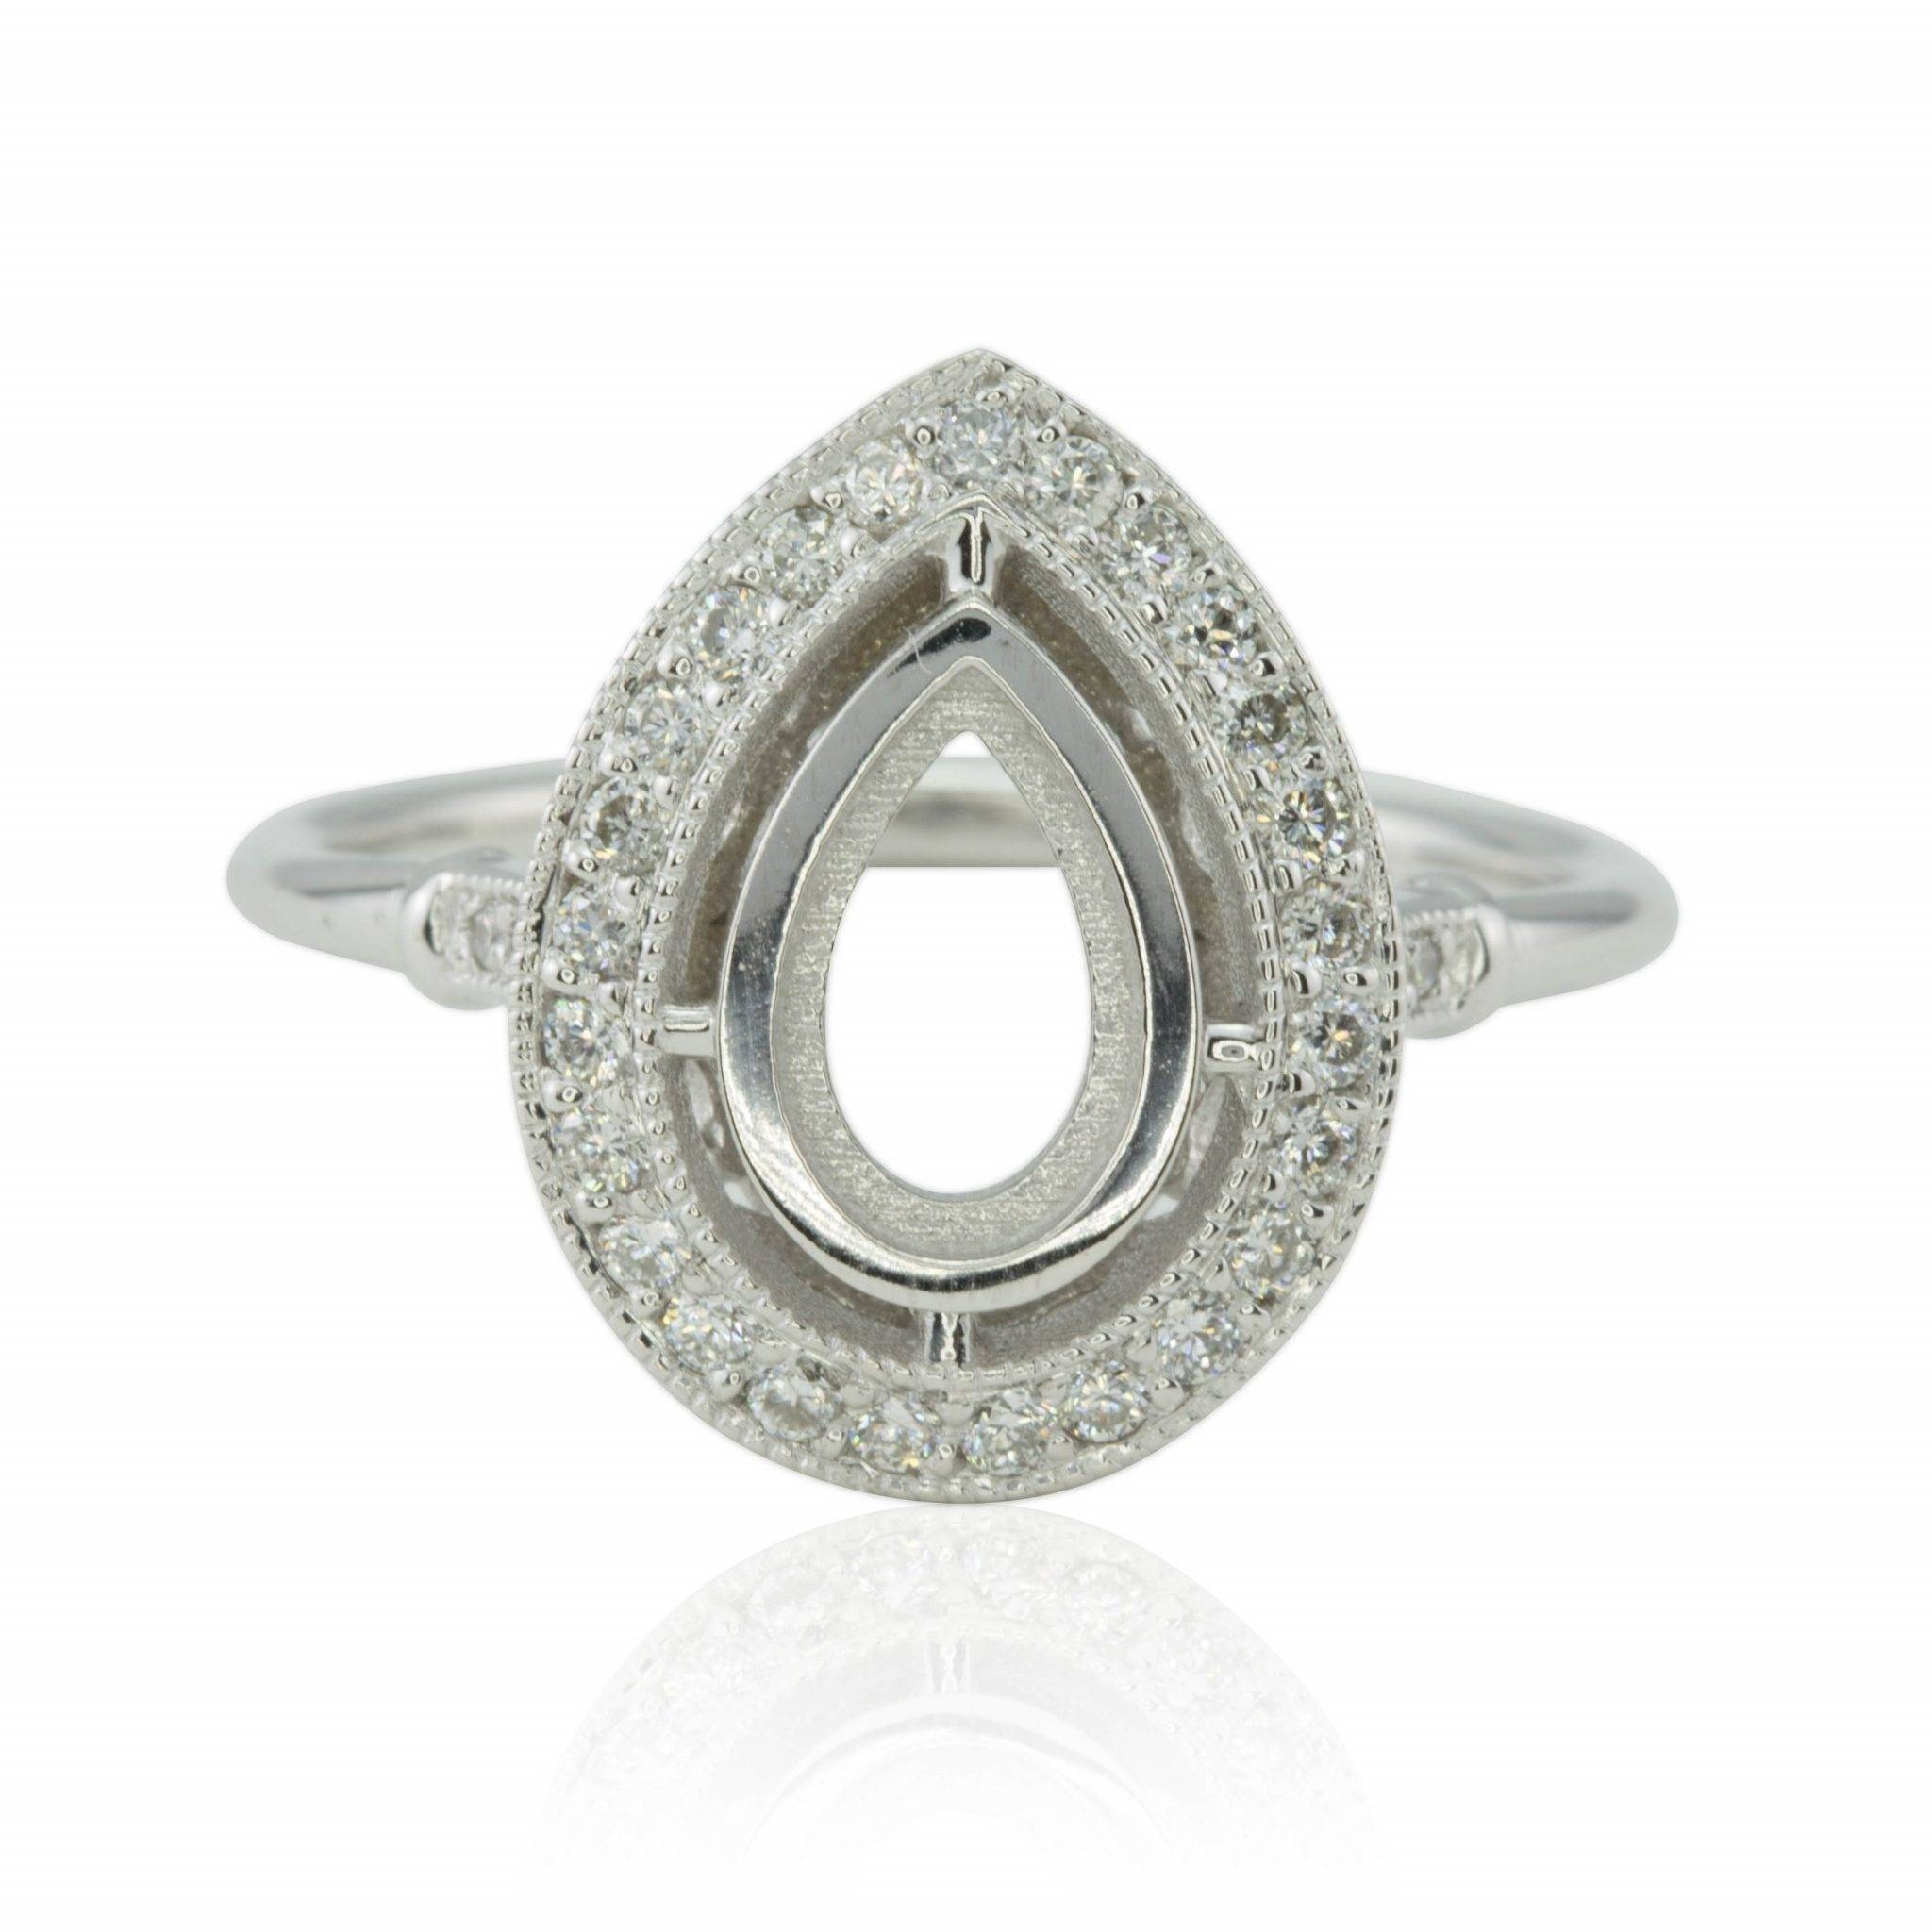 Bezel Set Pear Diamond Halo Semi Mount Engagement Ring With Throughout Pear Bezel Engagement Rings (View 5 of 15)